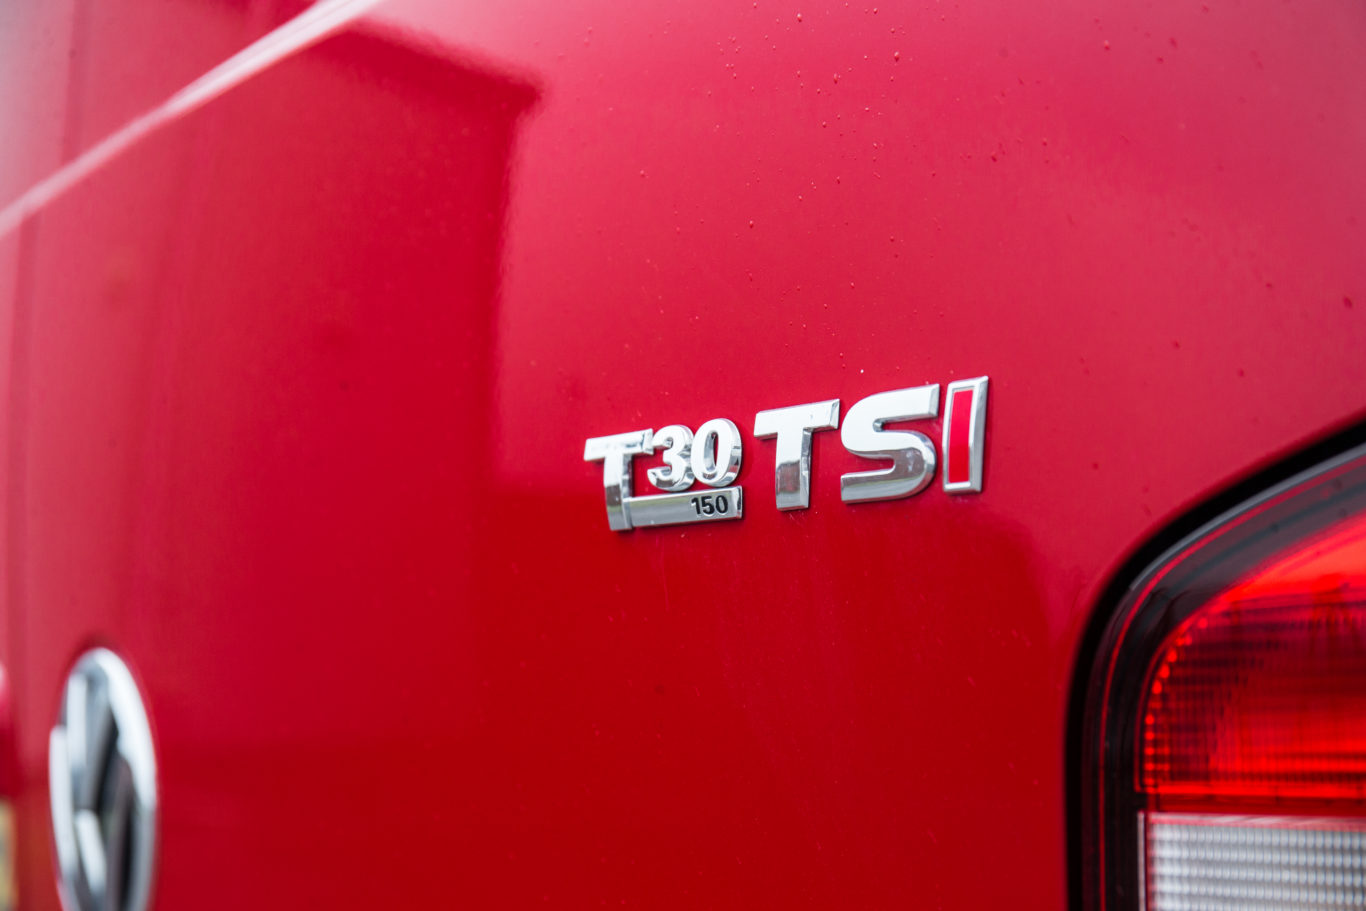 The Transporter is powered by a 2.0-litre petrol engine